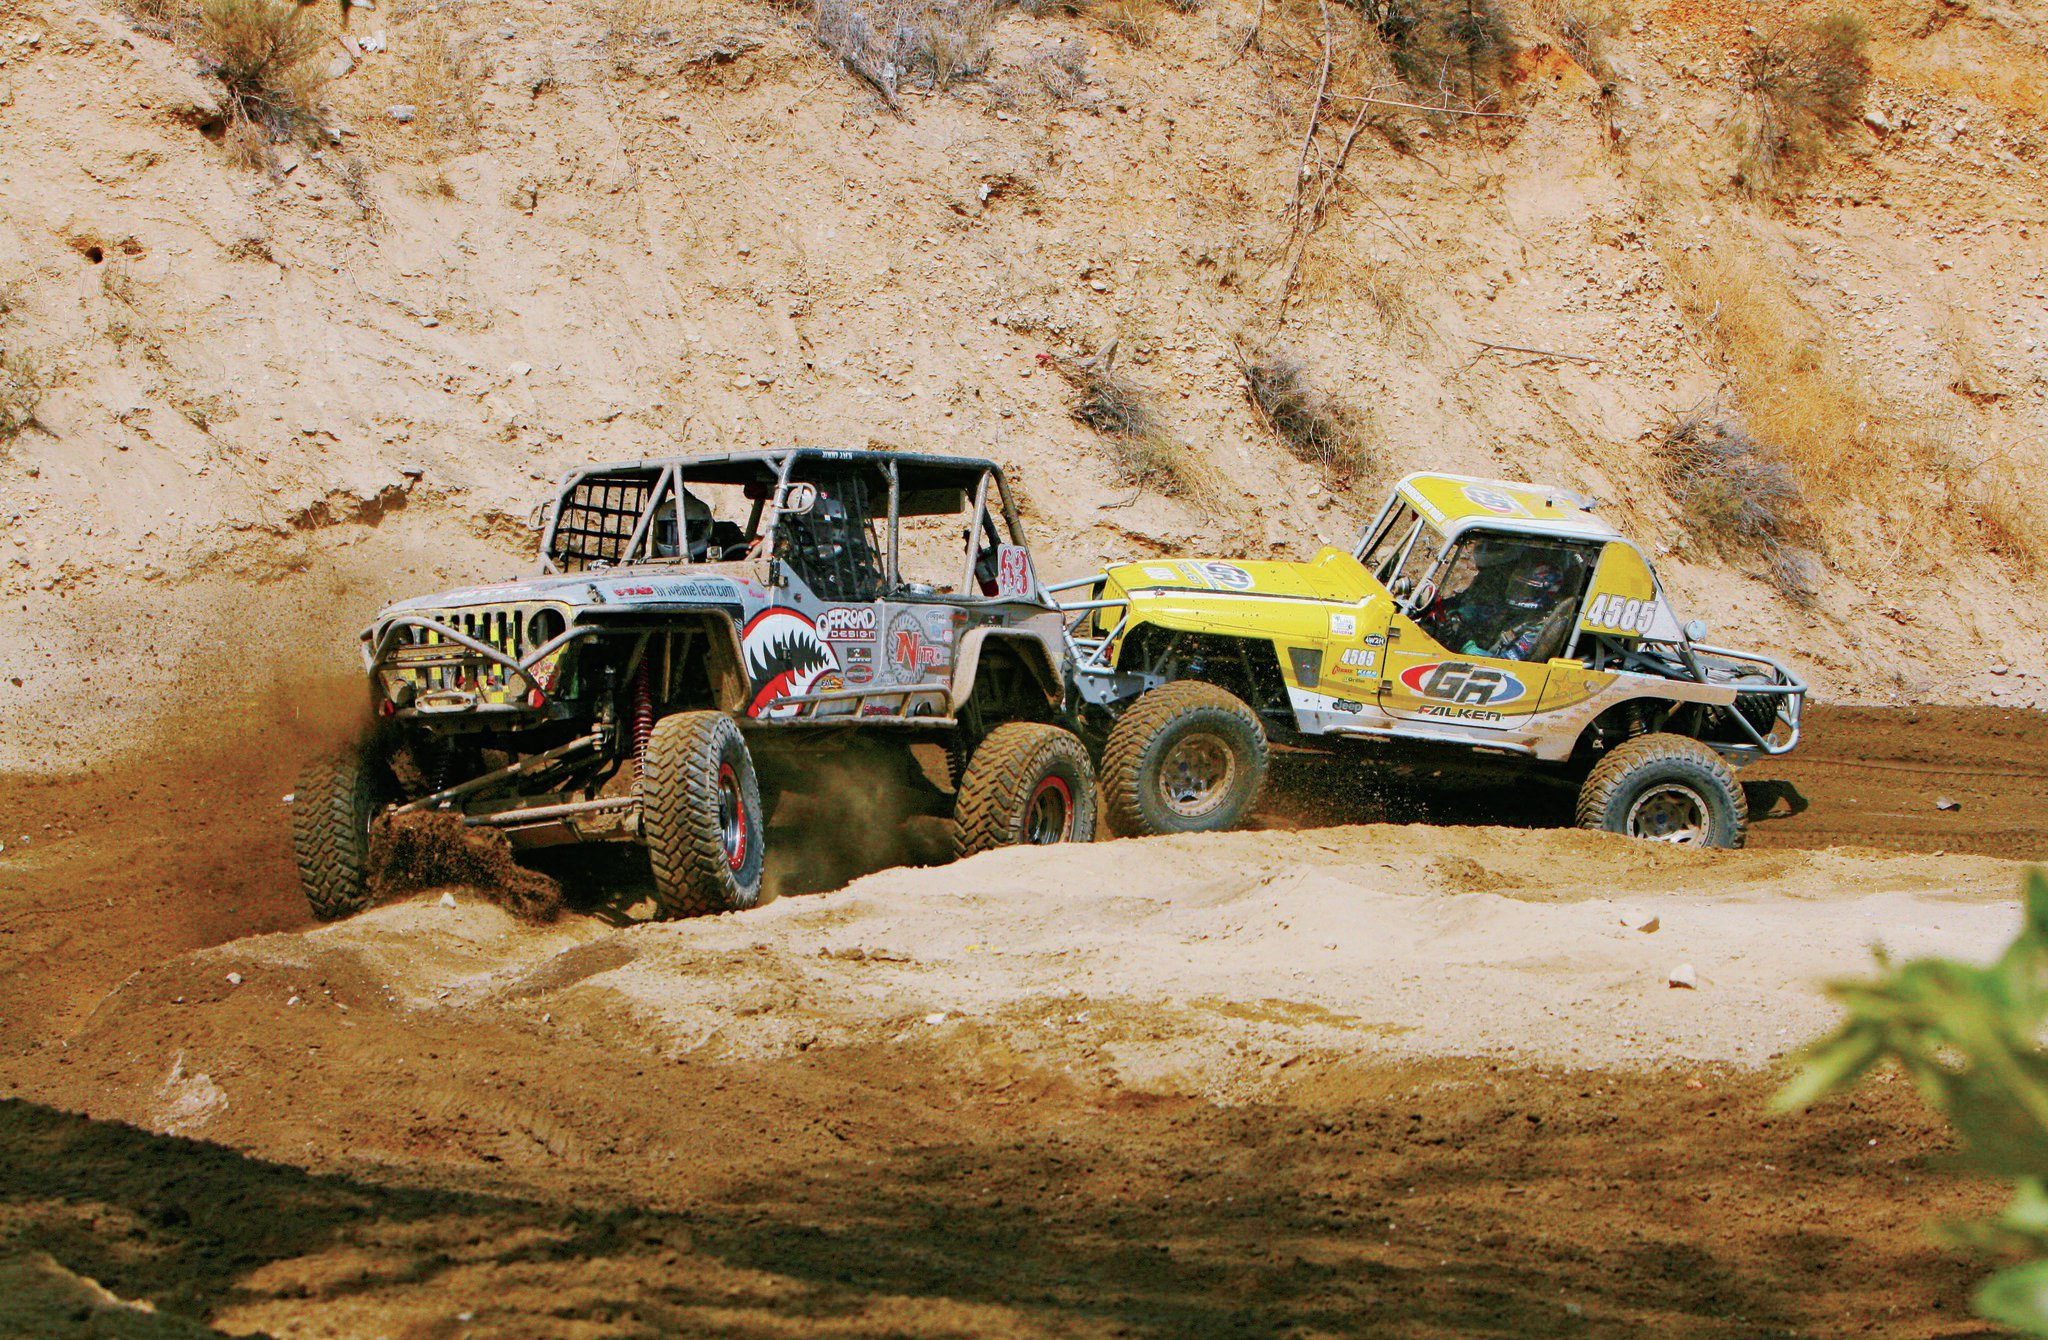 Hard-nerfing action is constant on the three-mile course. In Rubicon Express Modified 4500 class action, Jimmy Jack held off Jordan Pellegrino.